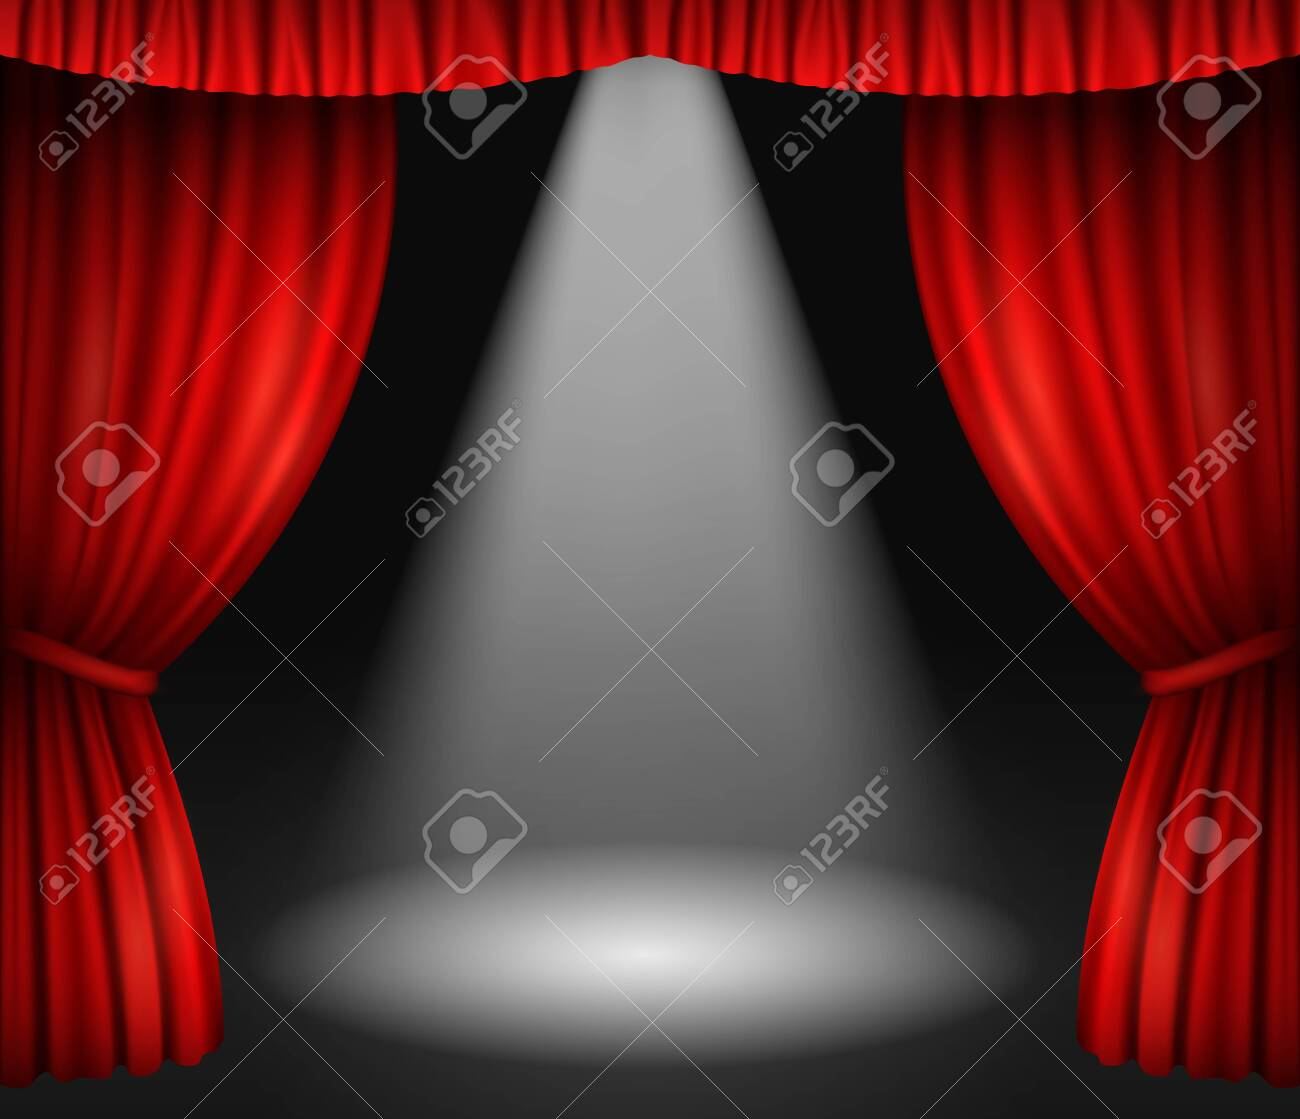 Theater stage with red curtains and spotlight - 139938597